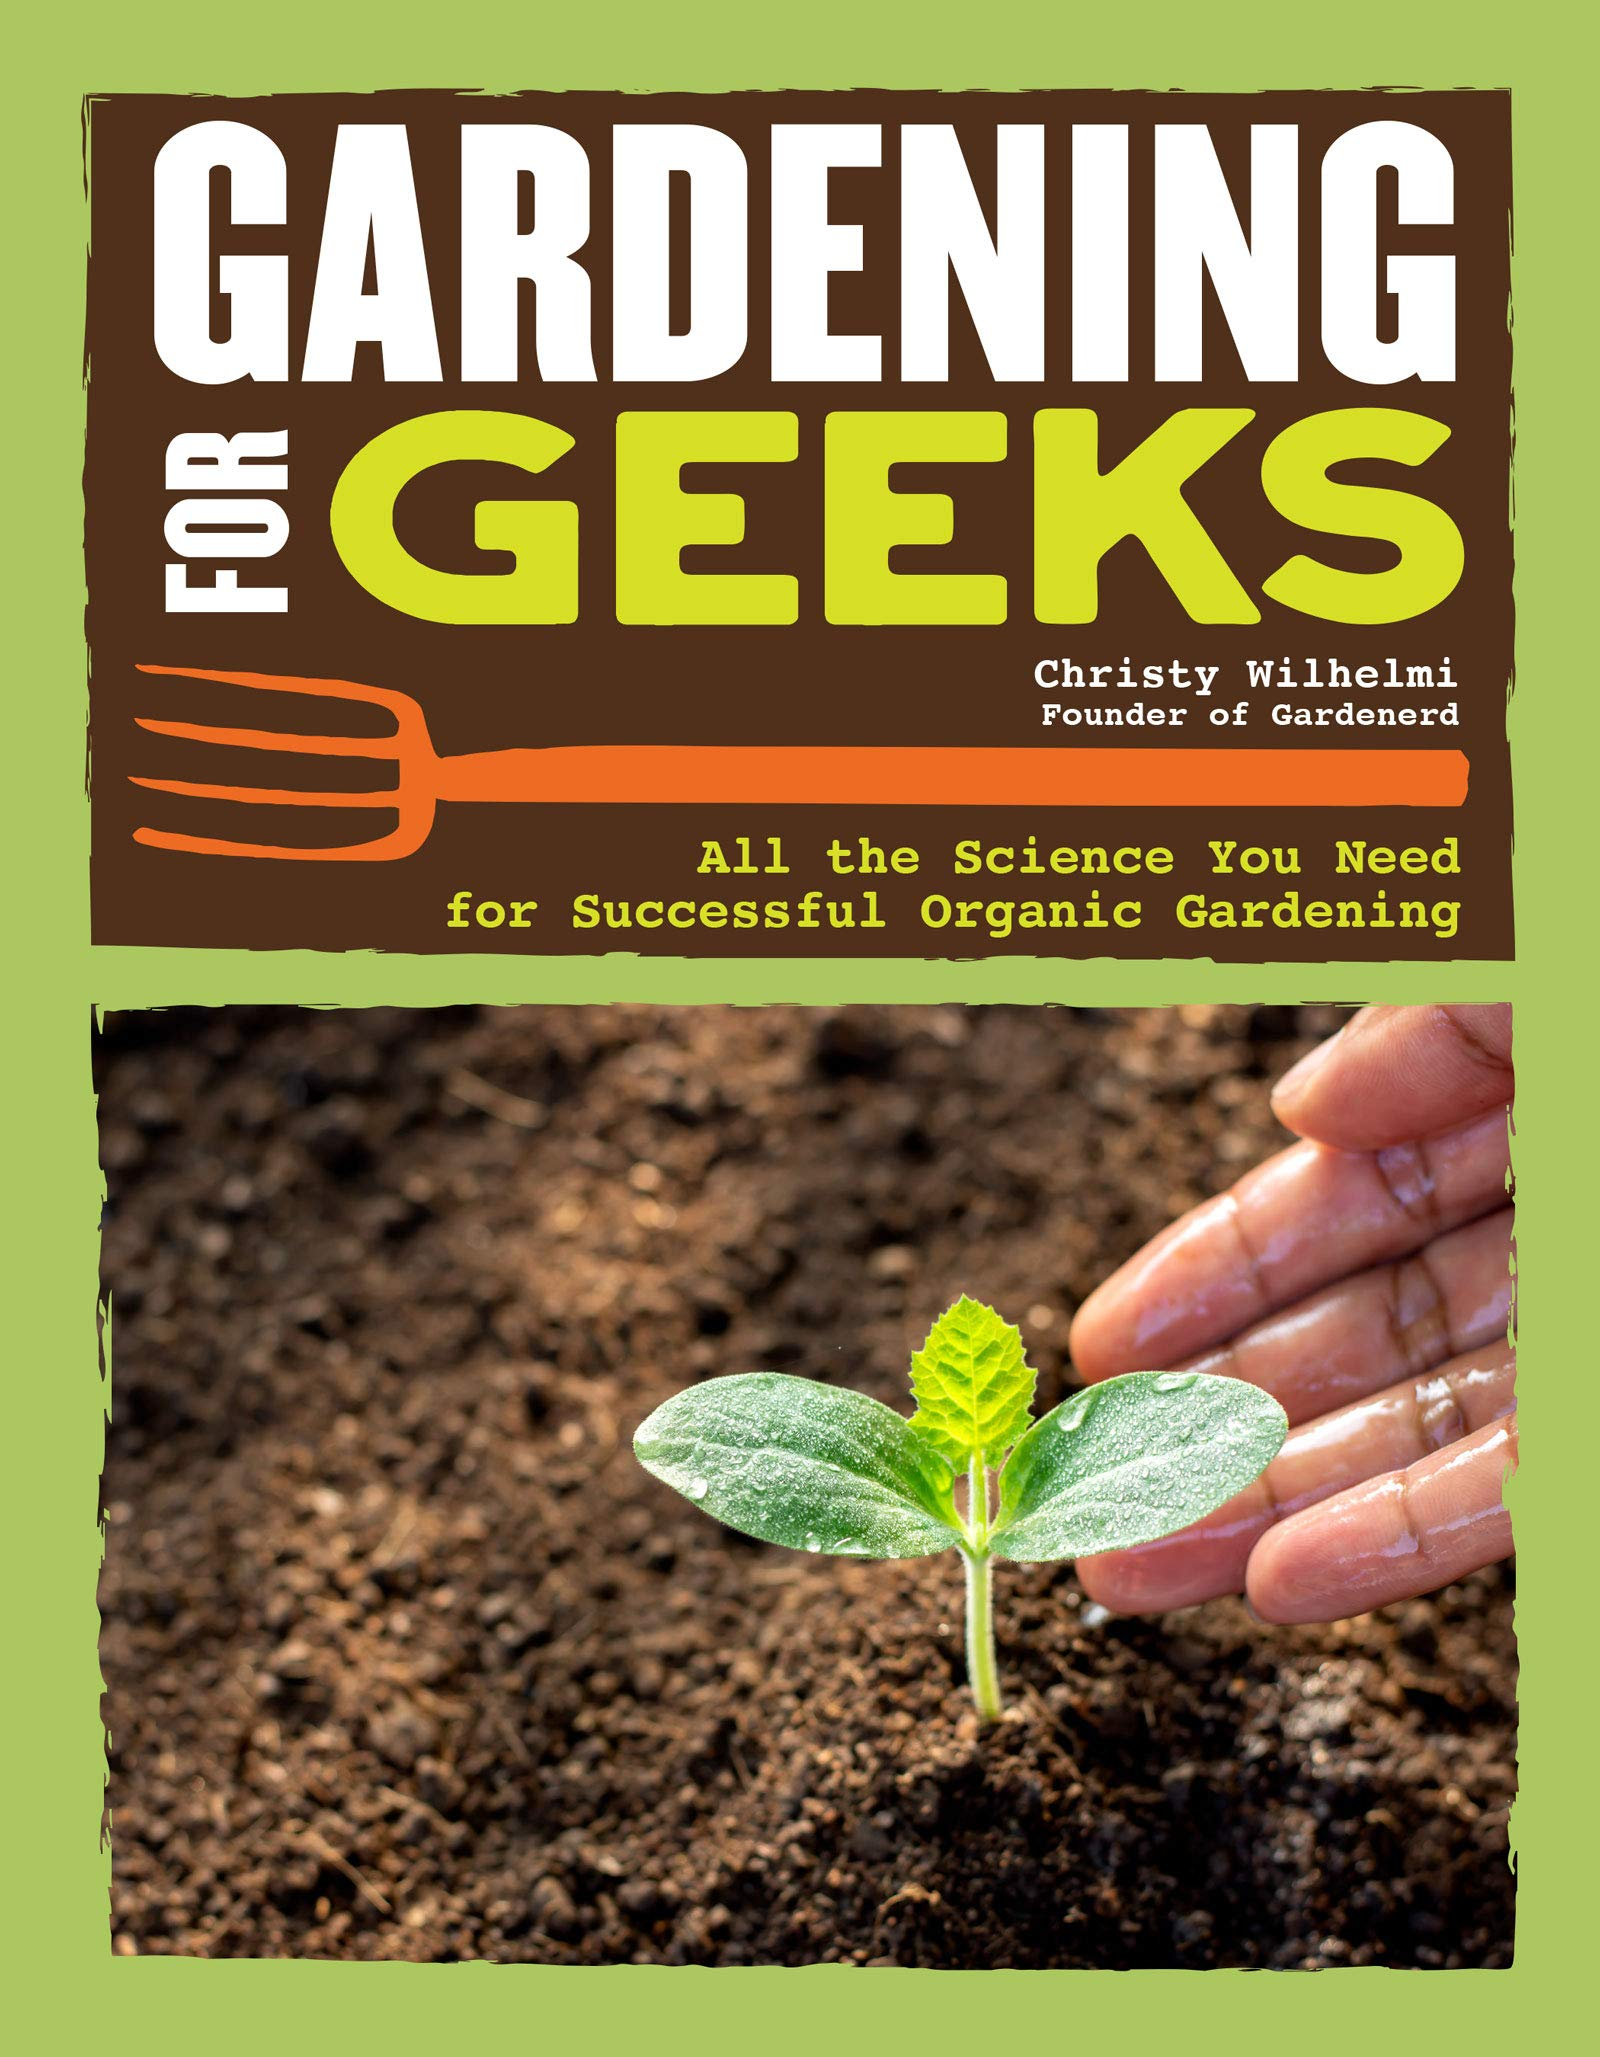 Image OfGardening For Geeks: All The Science You Need For Successful Organic Gardening (CompanionHouse Books) Step-by-Step Process...